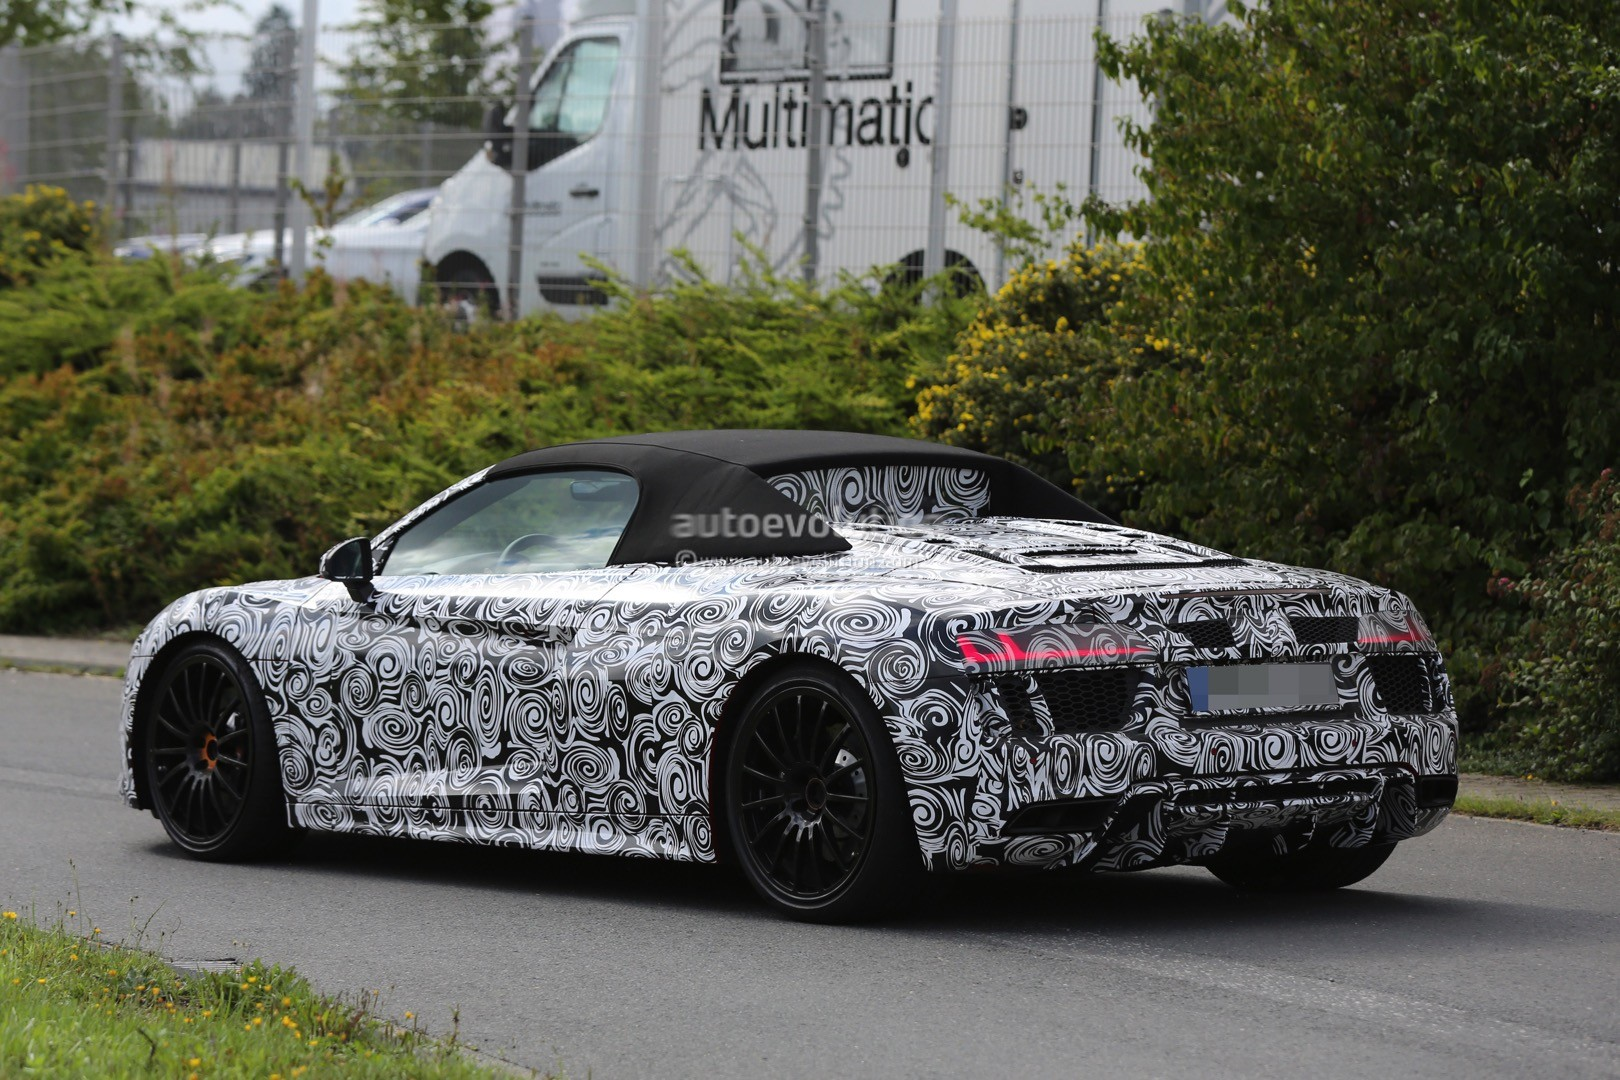 2017 audi r8 spyder spied again could challenge turbo s. Black Bedroom Furniture Sets. Home Design Ideas